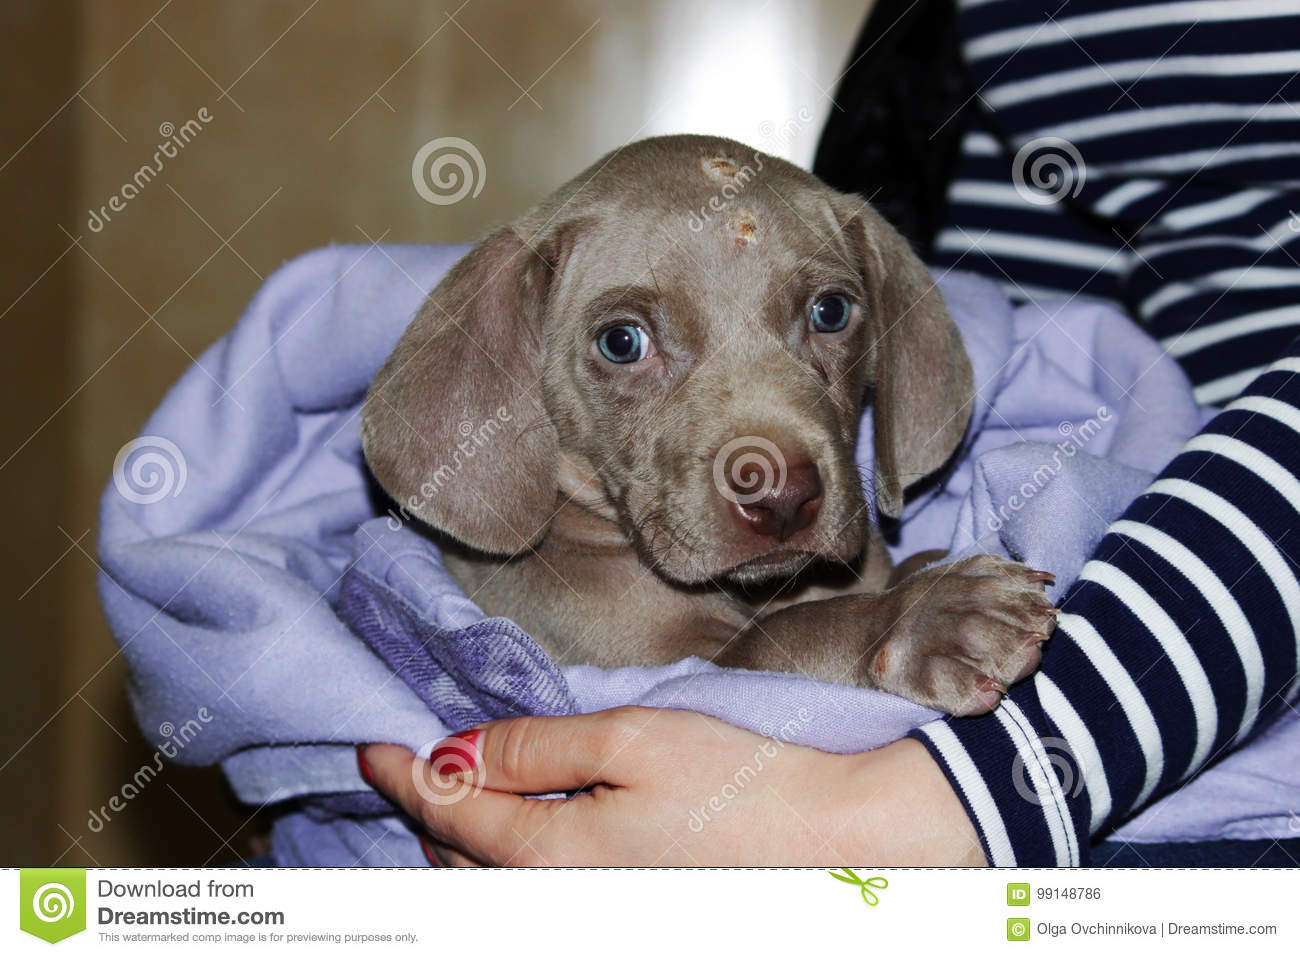 a weimaraner puppy with blue eyes dermatological problems of